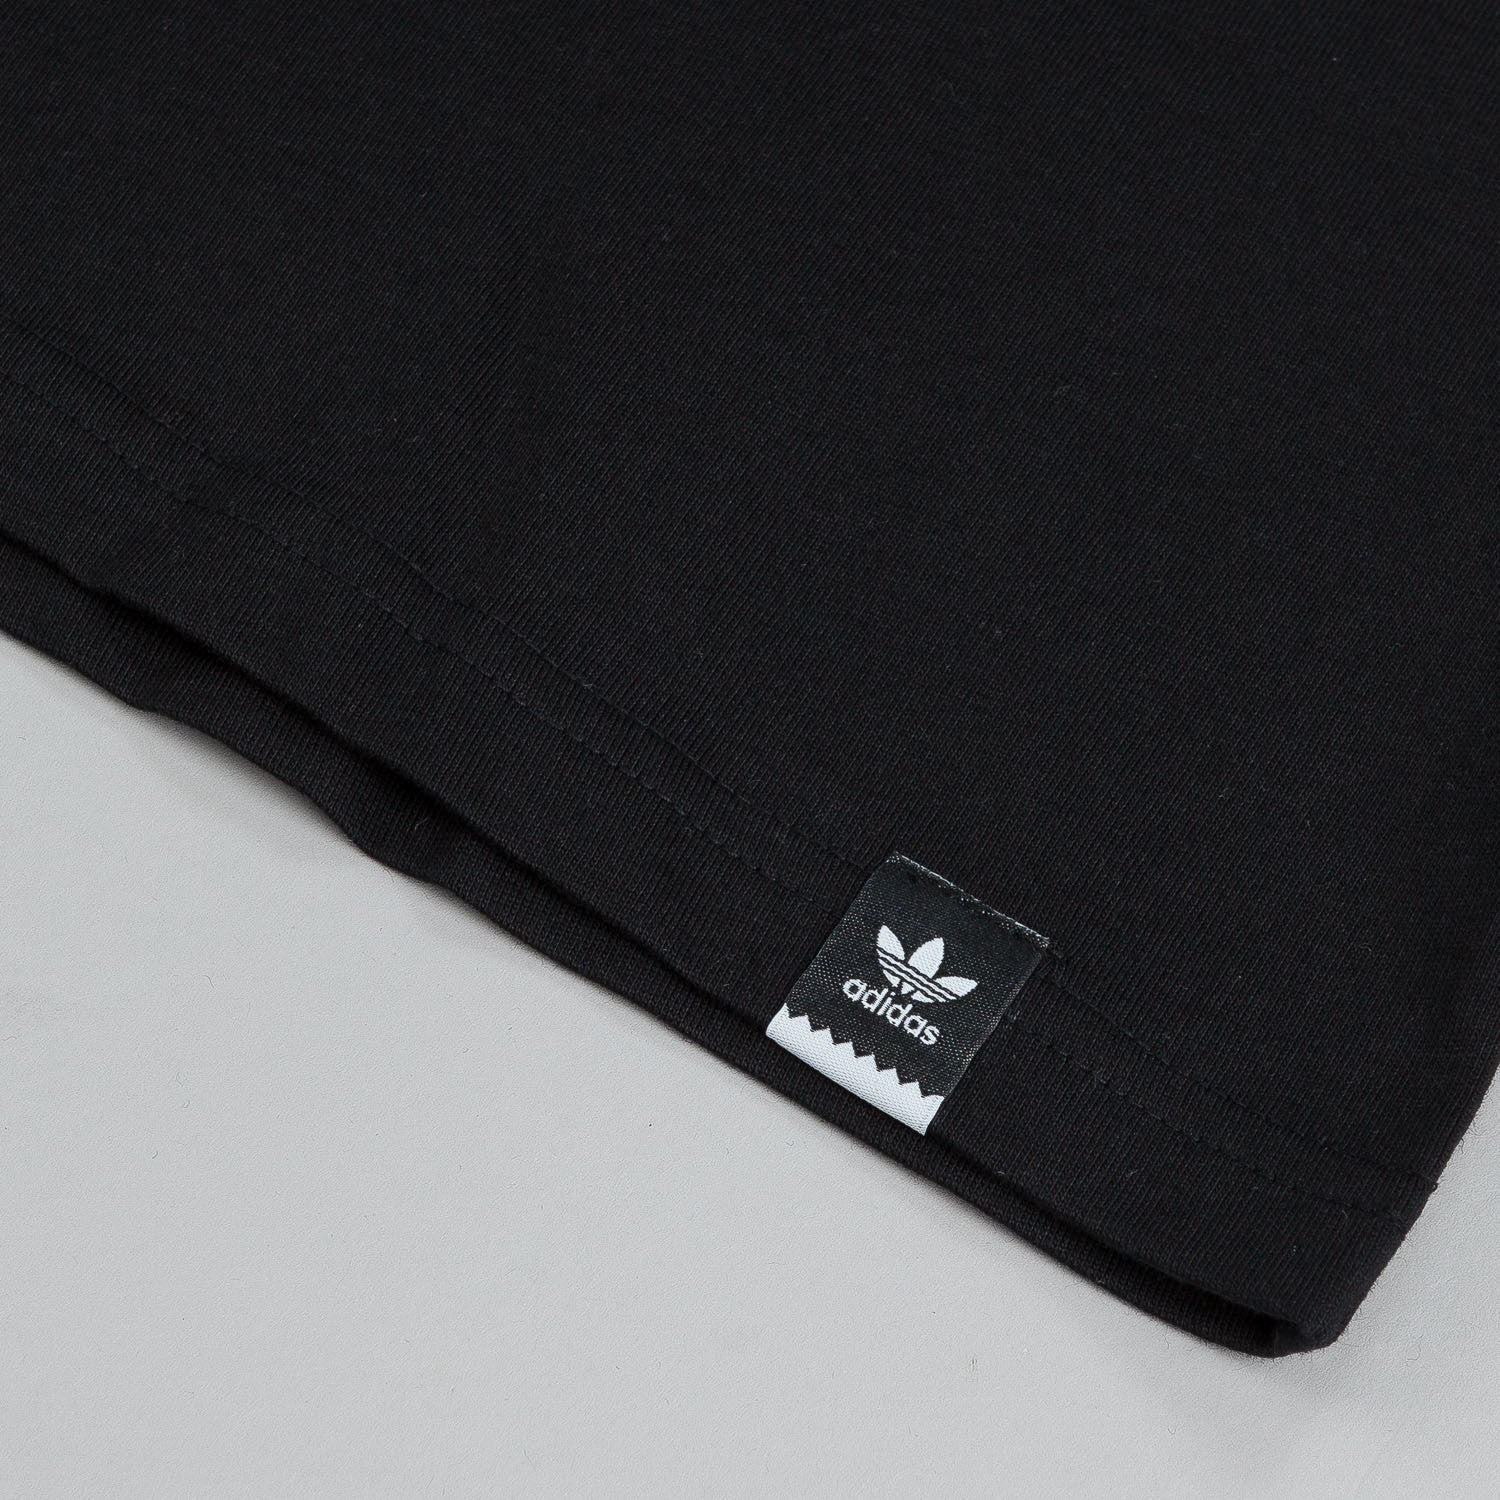 Adidas X The Hundreds T-Shirt - Black